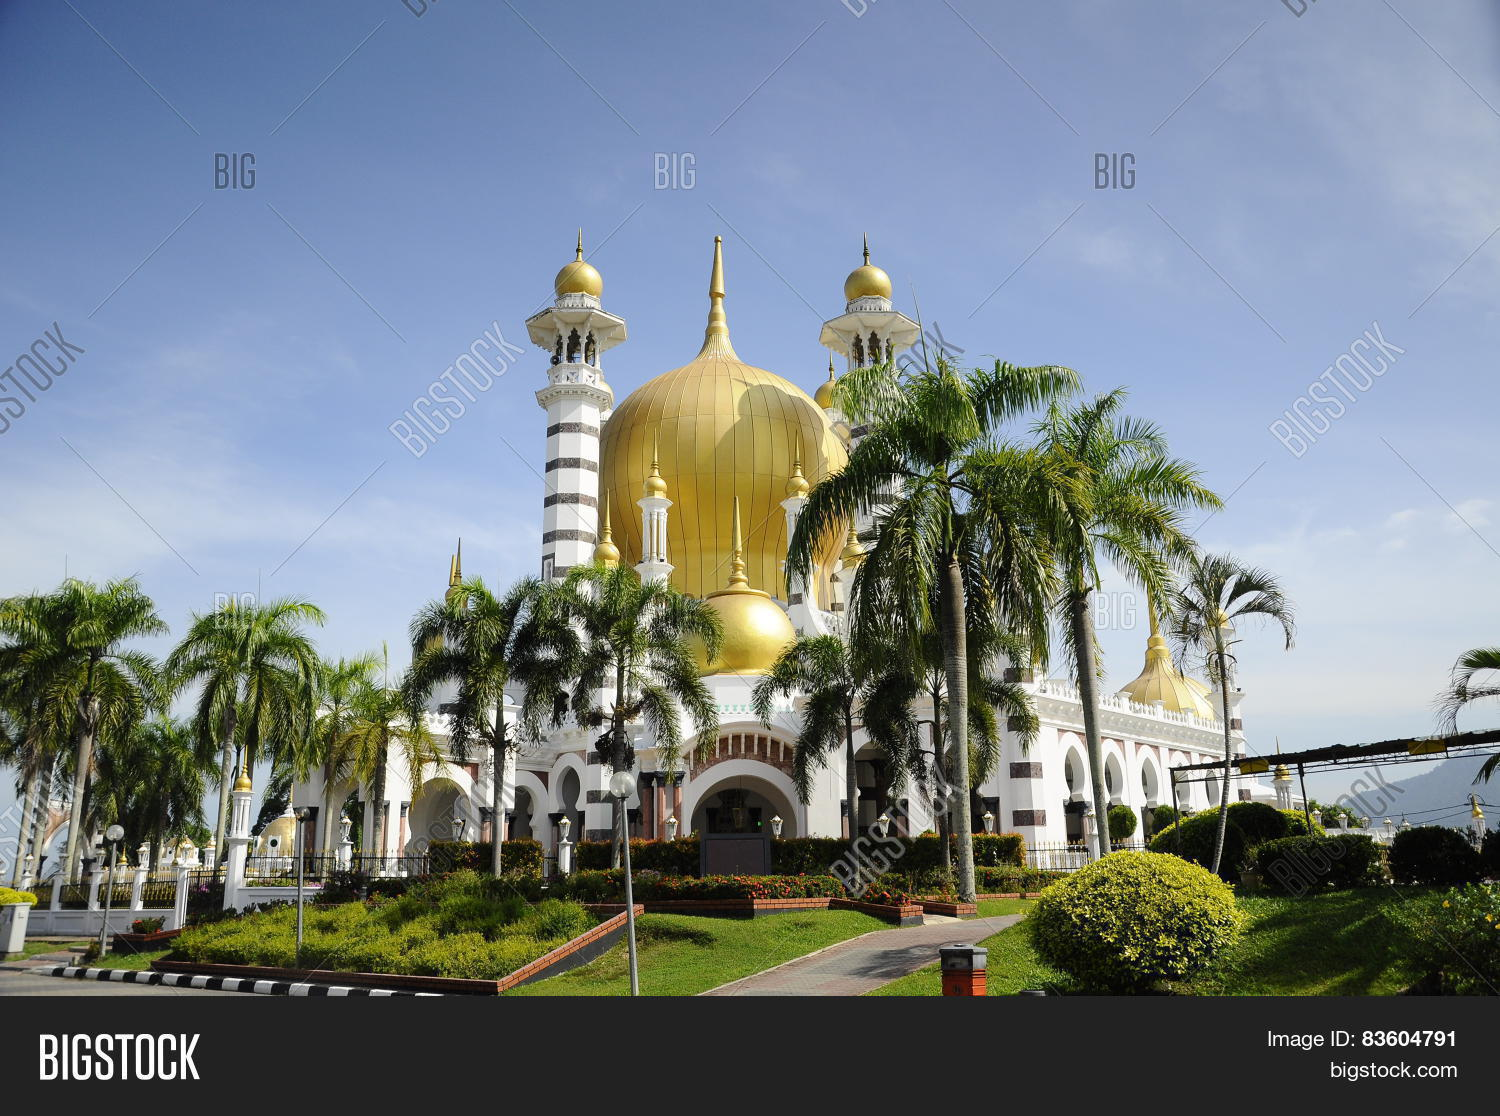 kuala kangsar big and beautiful singles Transit through taiping kuala kangsar kamunting and port weld (kuala  sepetang) | see more ideas  ubudiah mosque, kuala kangsar, malaysia a  beautiful mosque with a golden dome find this pin  what to look for when  going on an adventure trip single  taiping is a great and tranquil city in  perak a great.